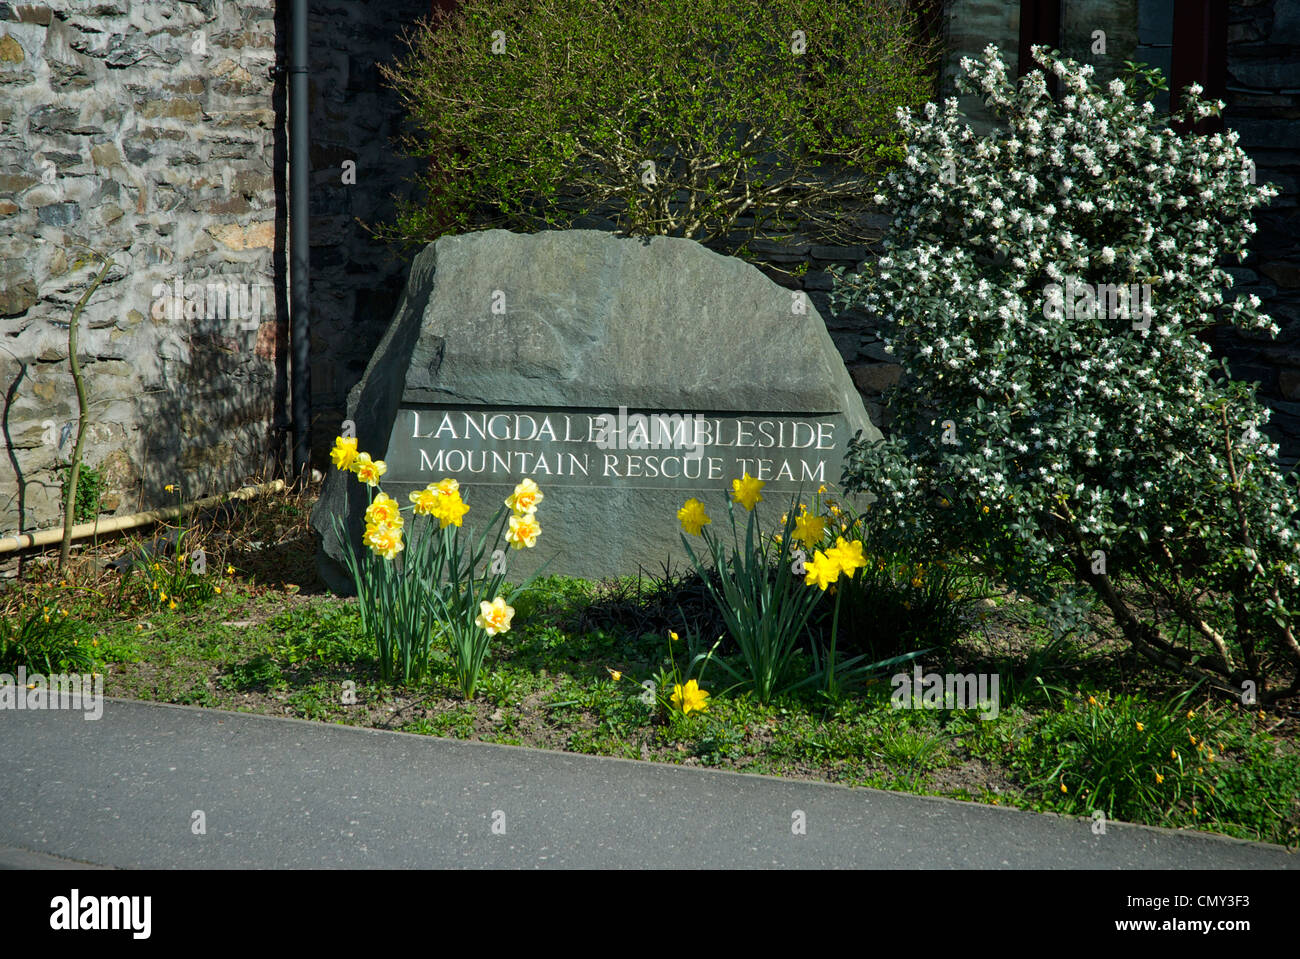 Slate engraved with Langale & Ambleside Mountain Rescue Team, outside the team's base on Lake Road, Ambleside, - Stock Image